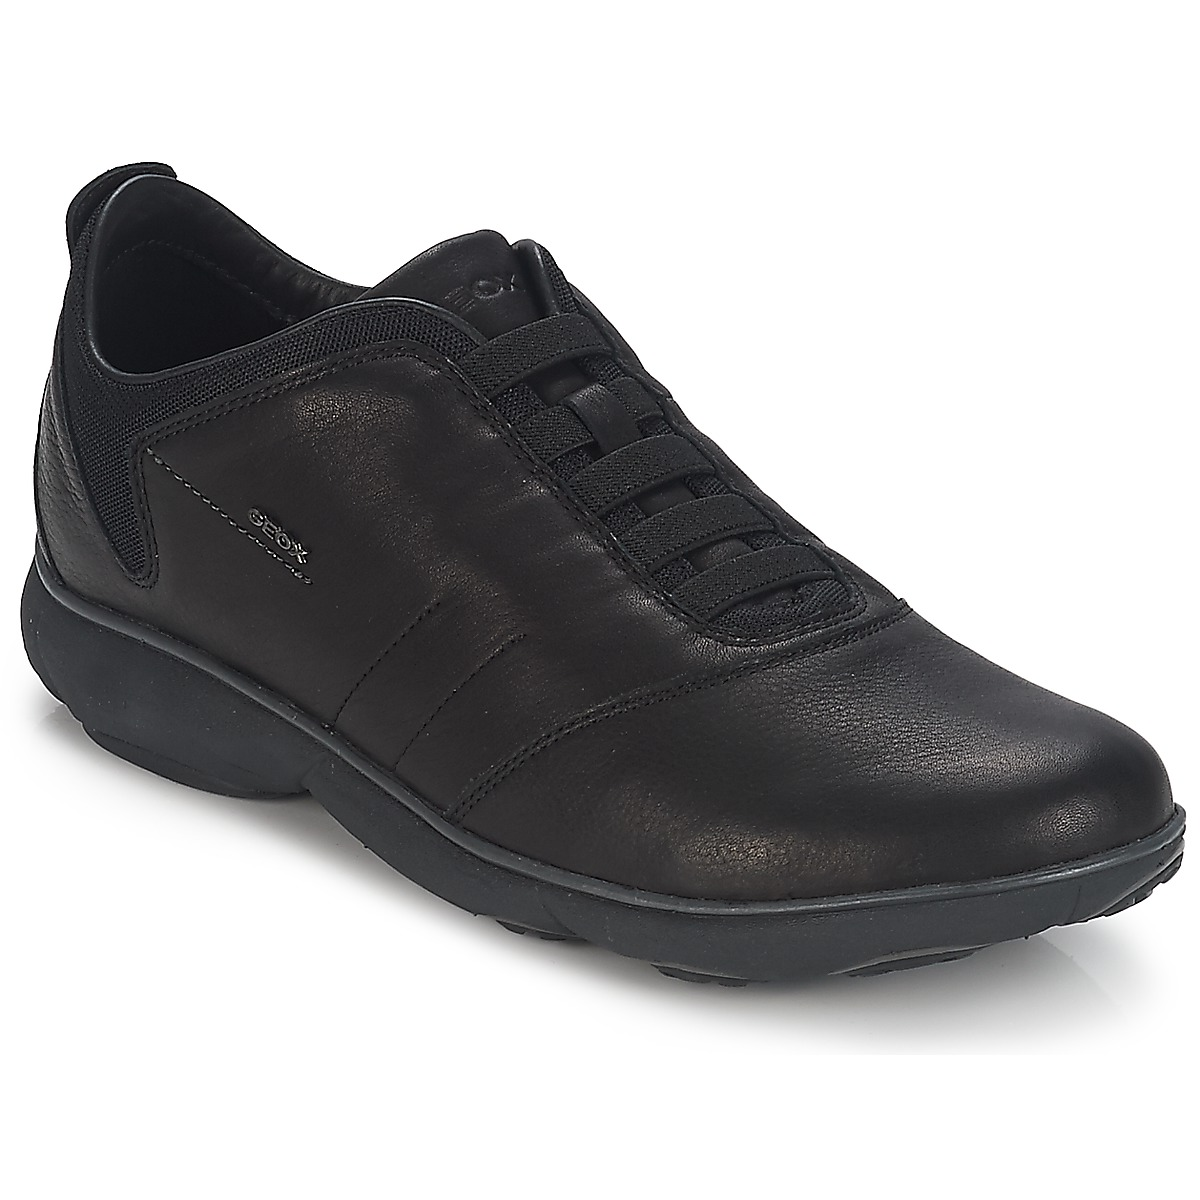 Geox NEBULA B Black - Free delivery | Spartoo NET ! - Shoes Low top  trainers Men USD/$168.00